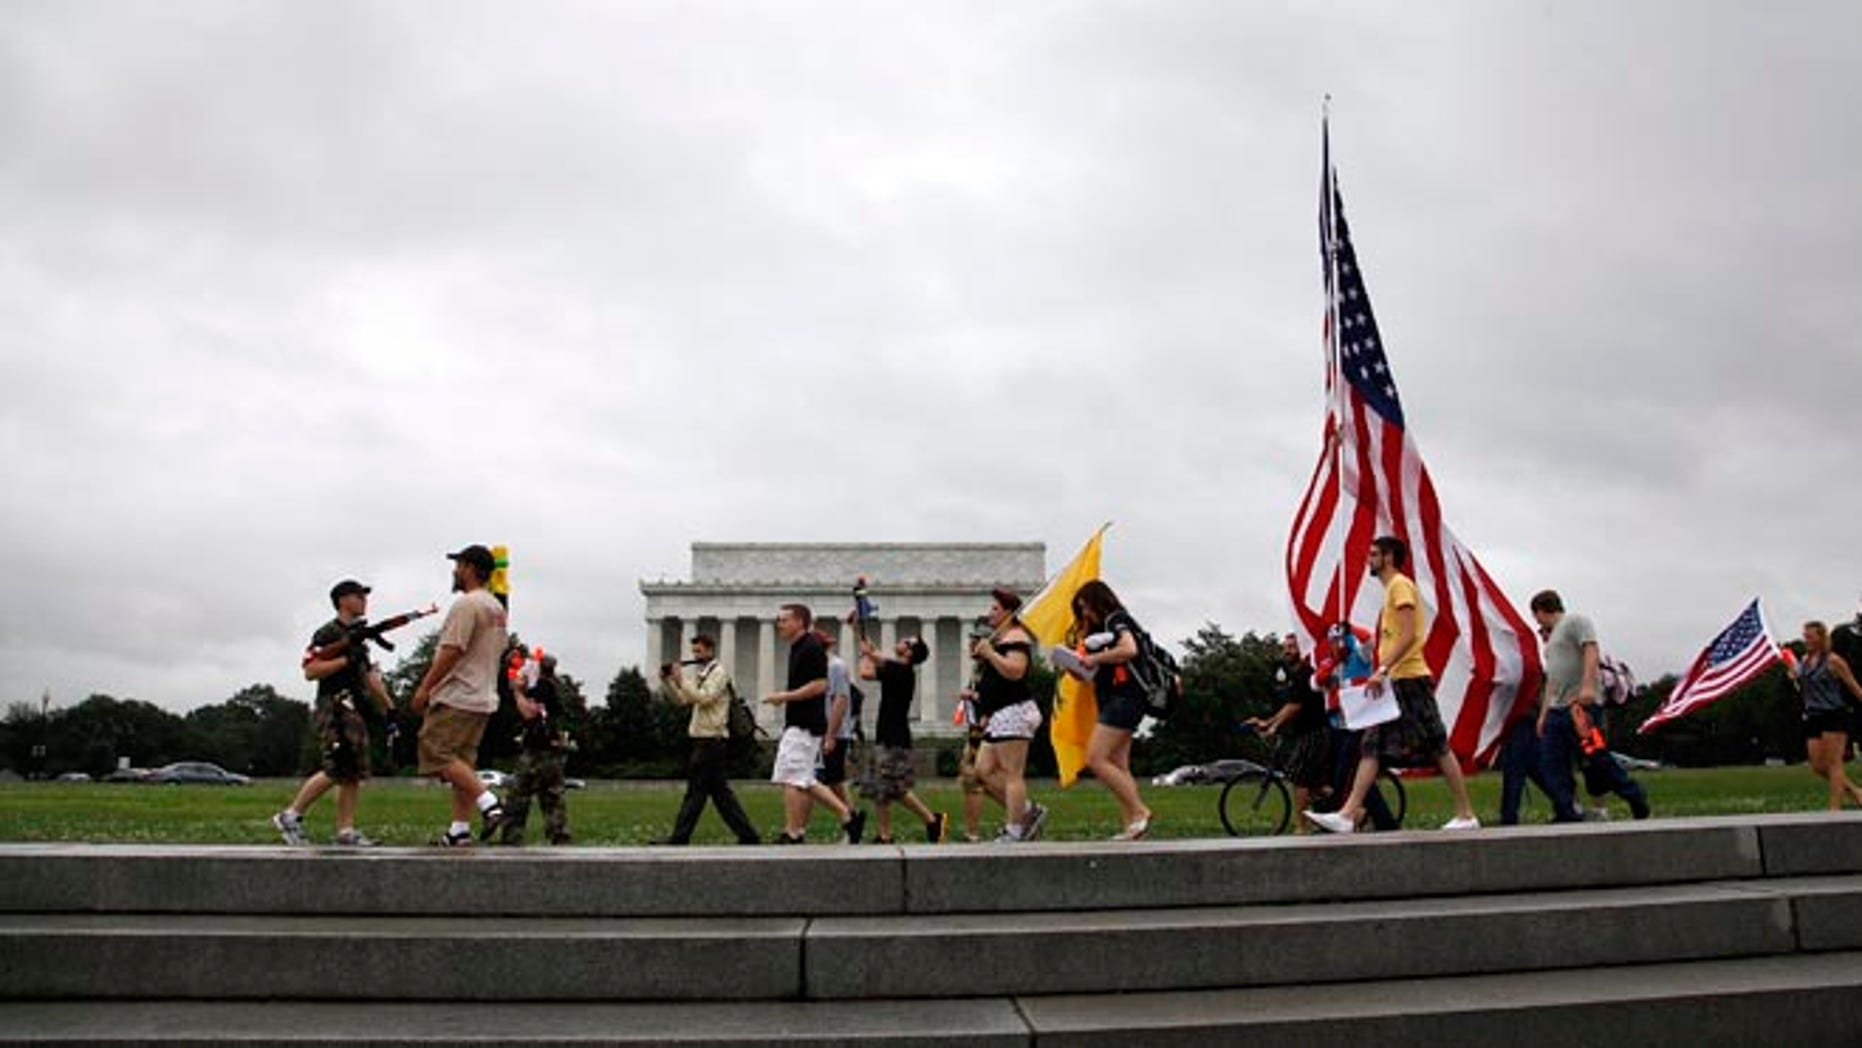 FILE: July 3, 2013:  A Second Amendment rally organized by a Libertarian website at the Lincoln Memorial, in Washington, D.C.